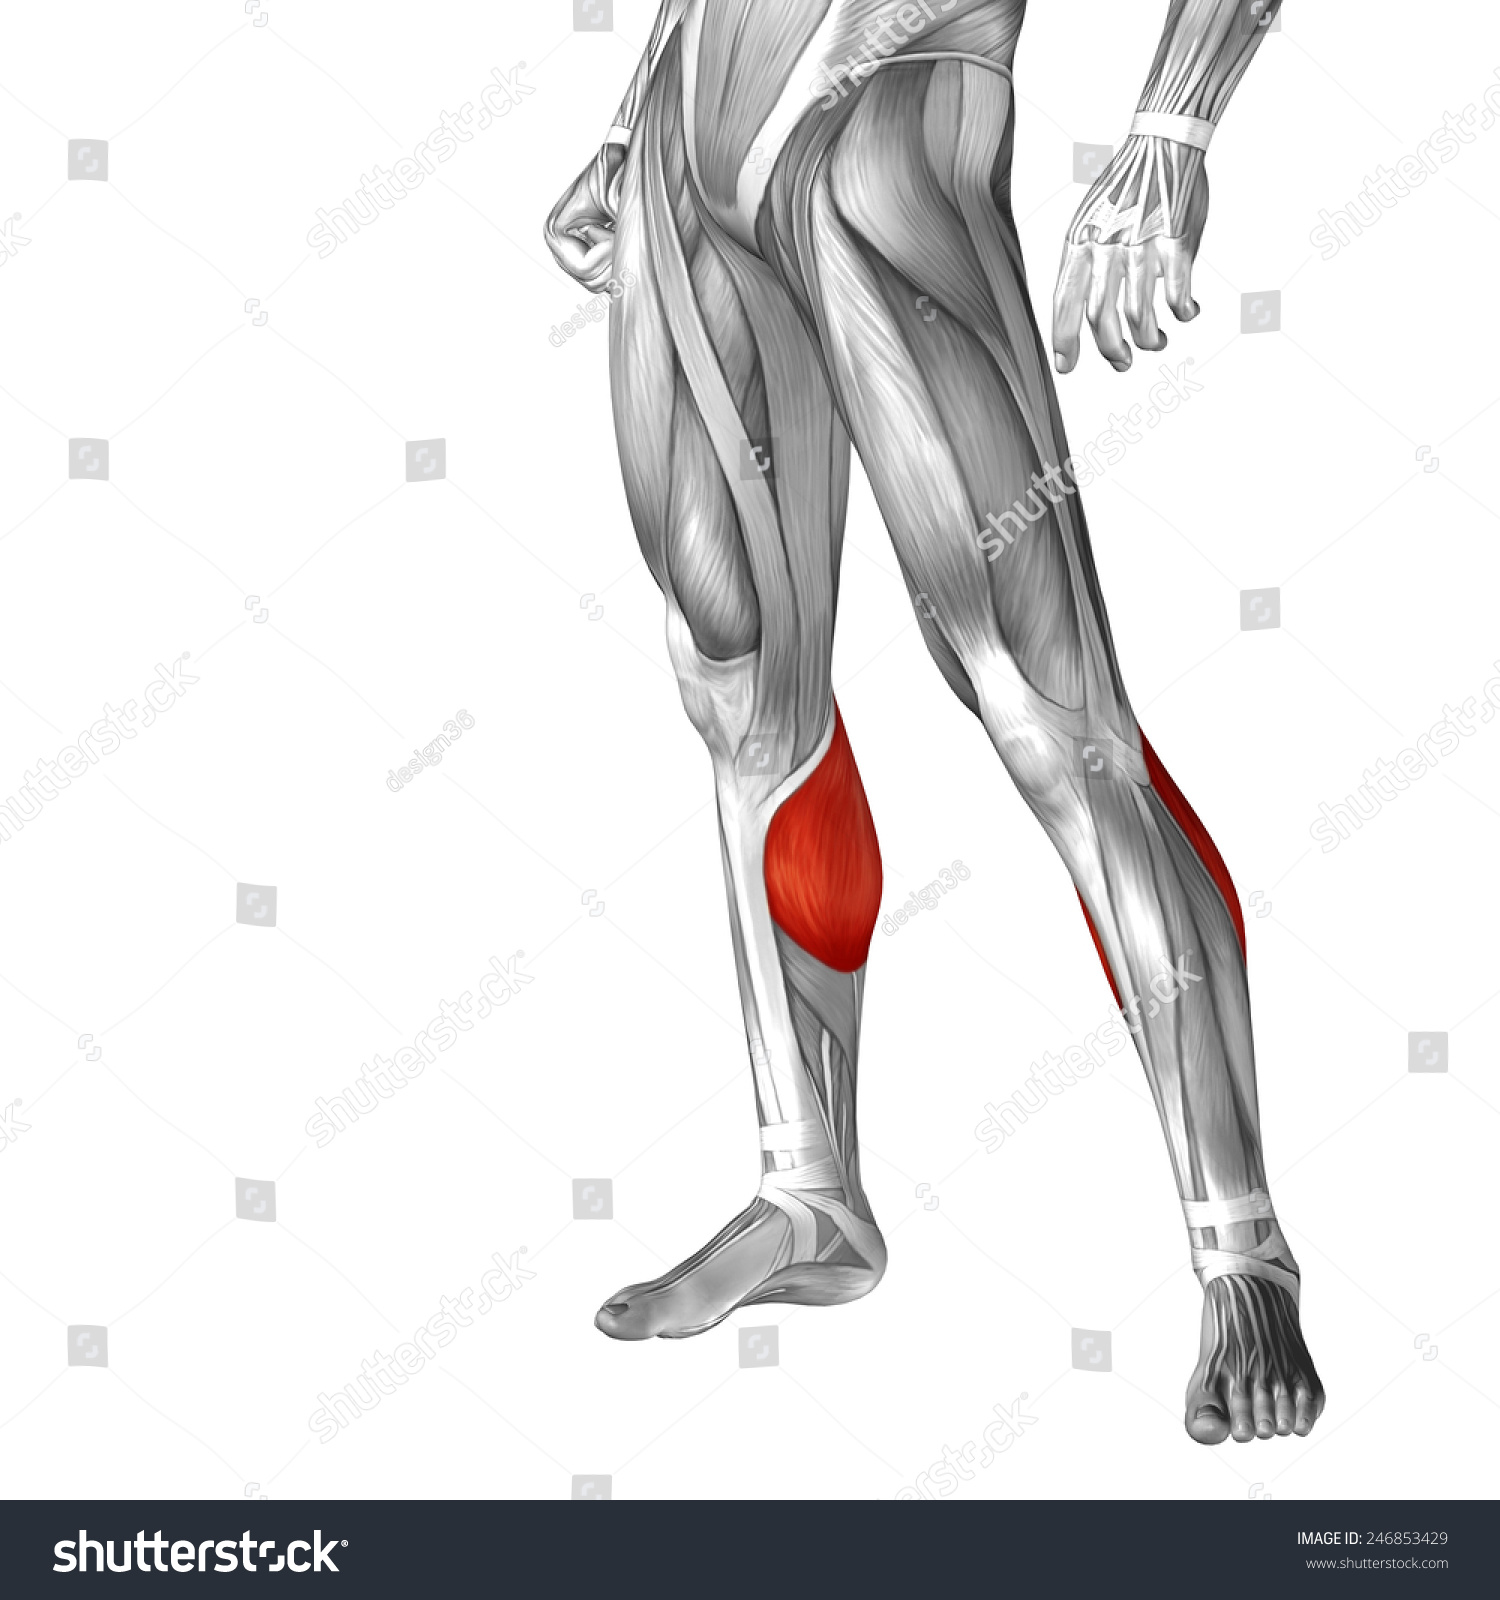 Royalty Free Stock Illustration Of Conceptual 3 D Gastrocnemius Leg